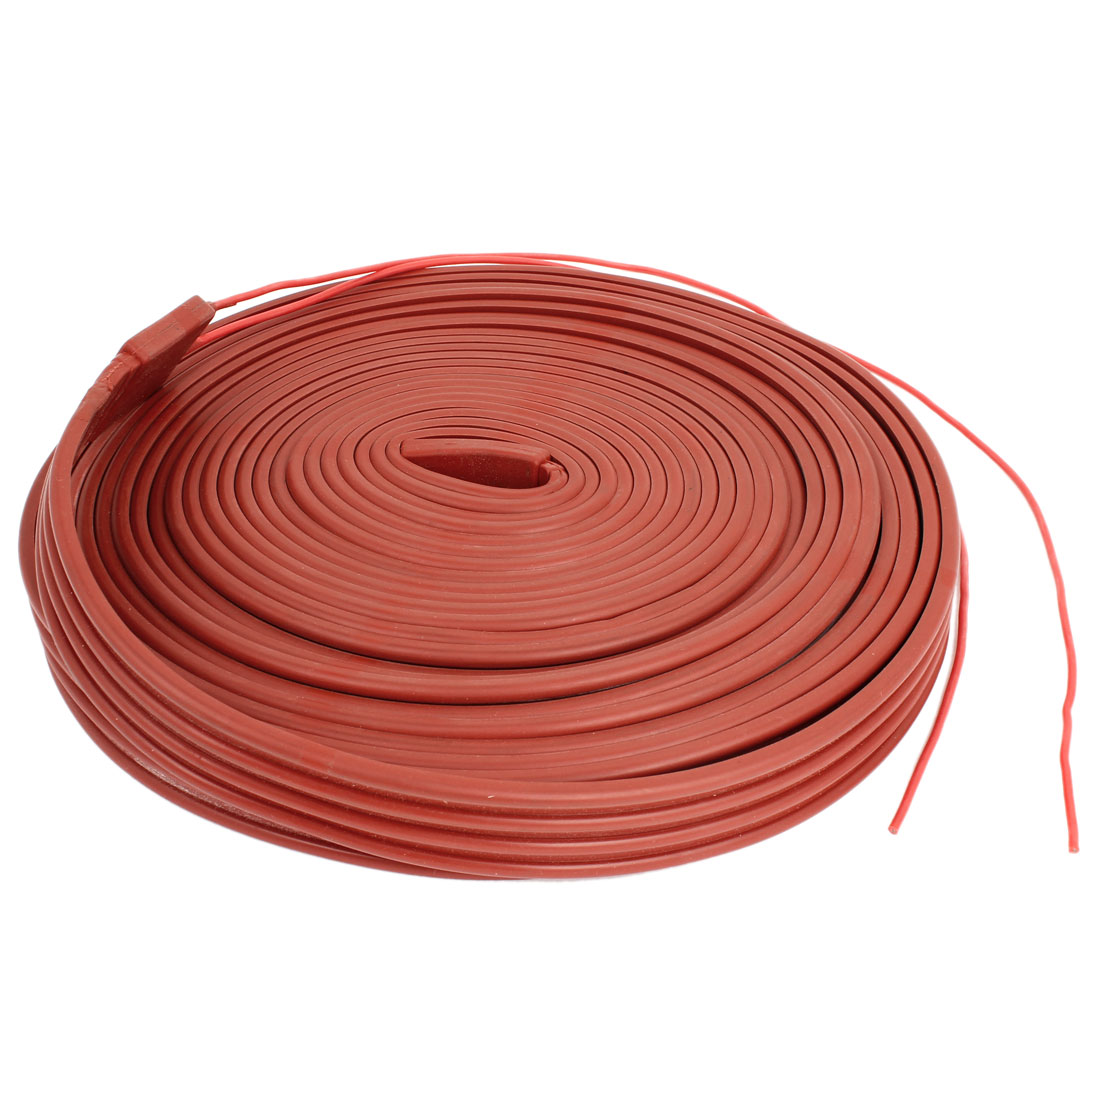 30mm Width 10M 32.8Ft Length Waterproof Silicone Band Heater Strip 48V Volt